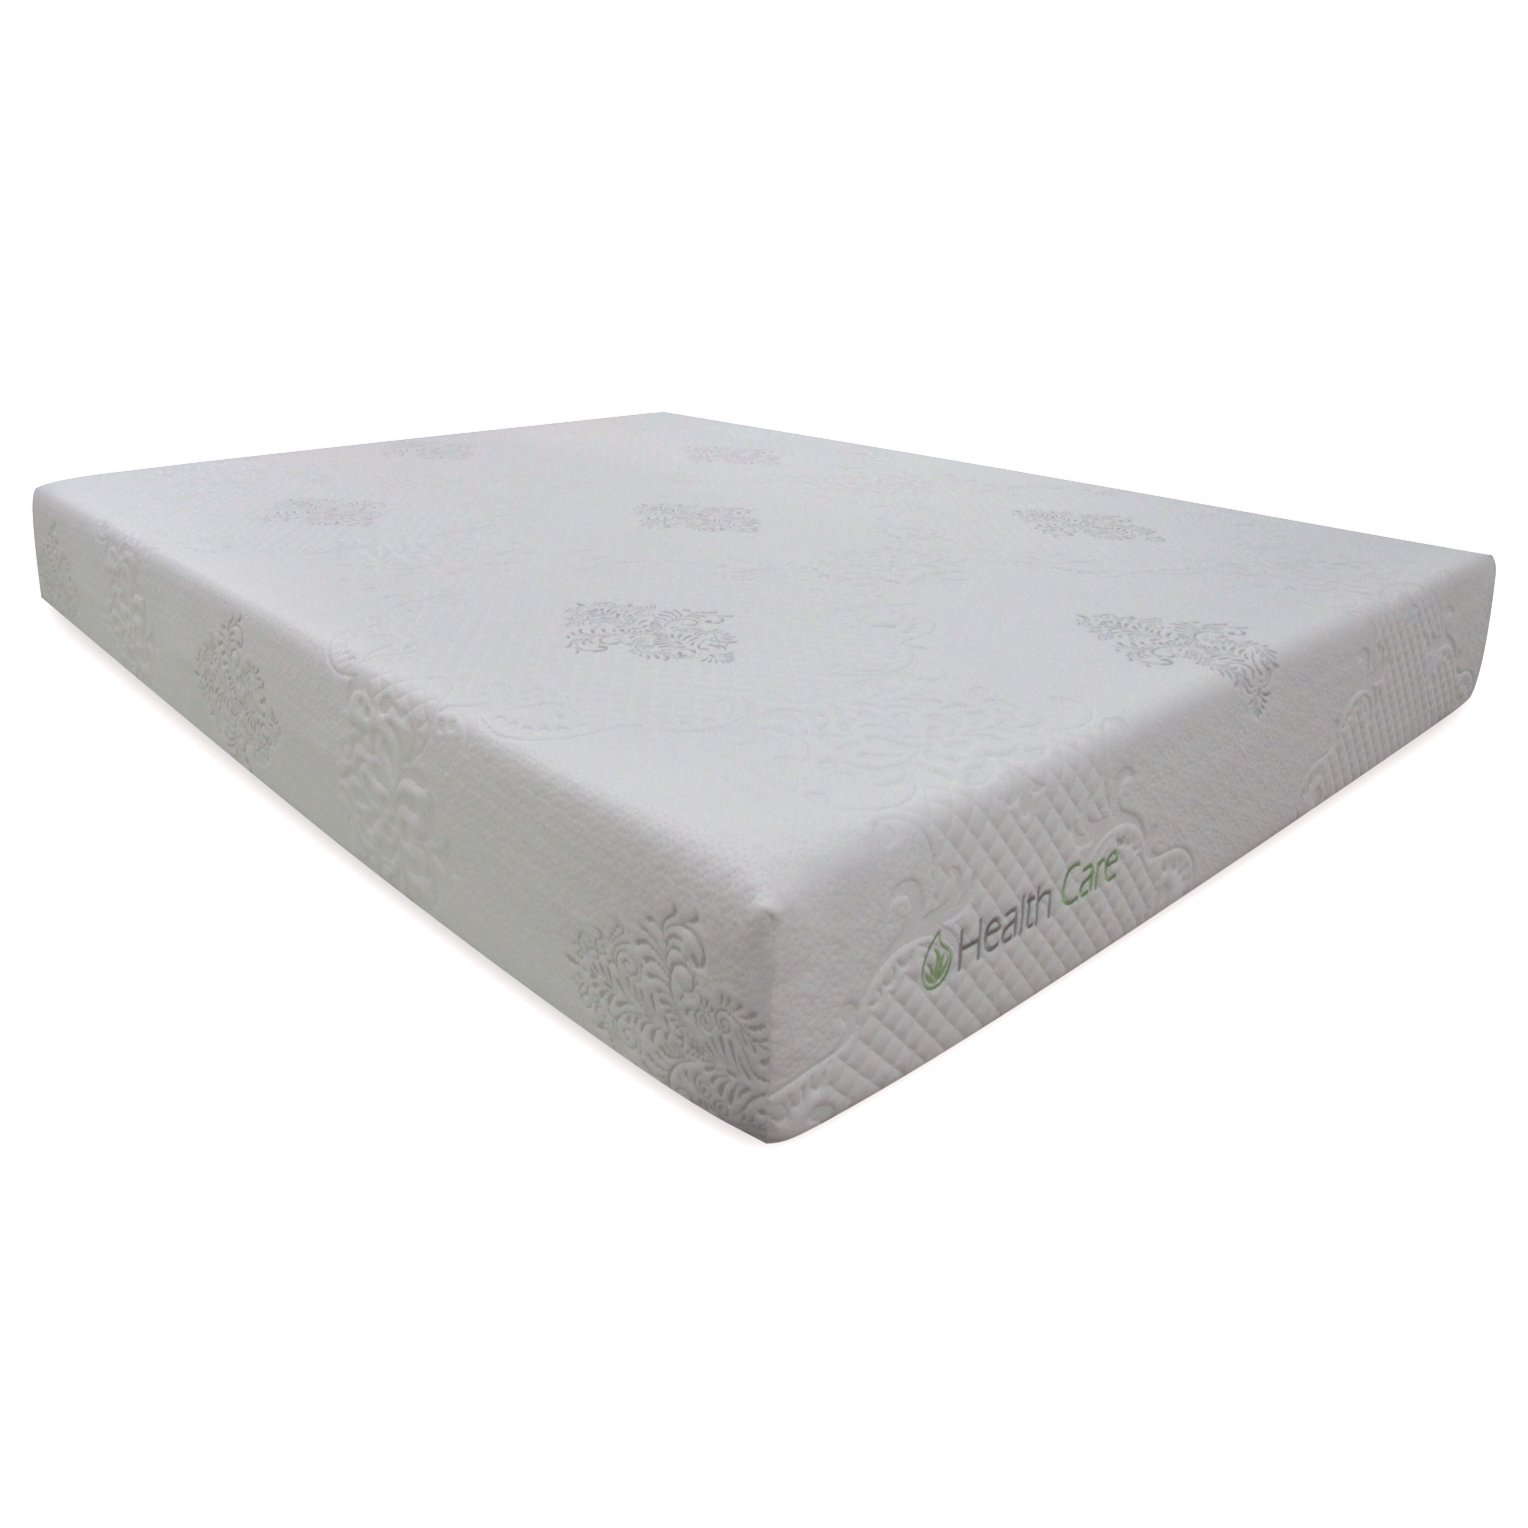 info the king living mattress sleep reverie tempurpedic qvccom with system home jantenhoor vs better split